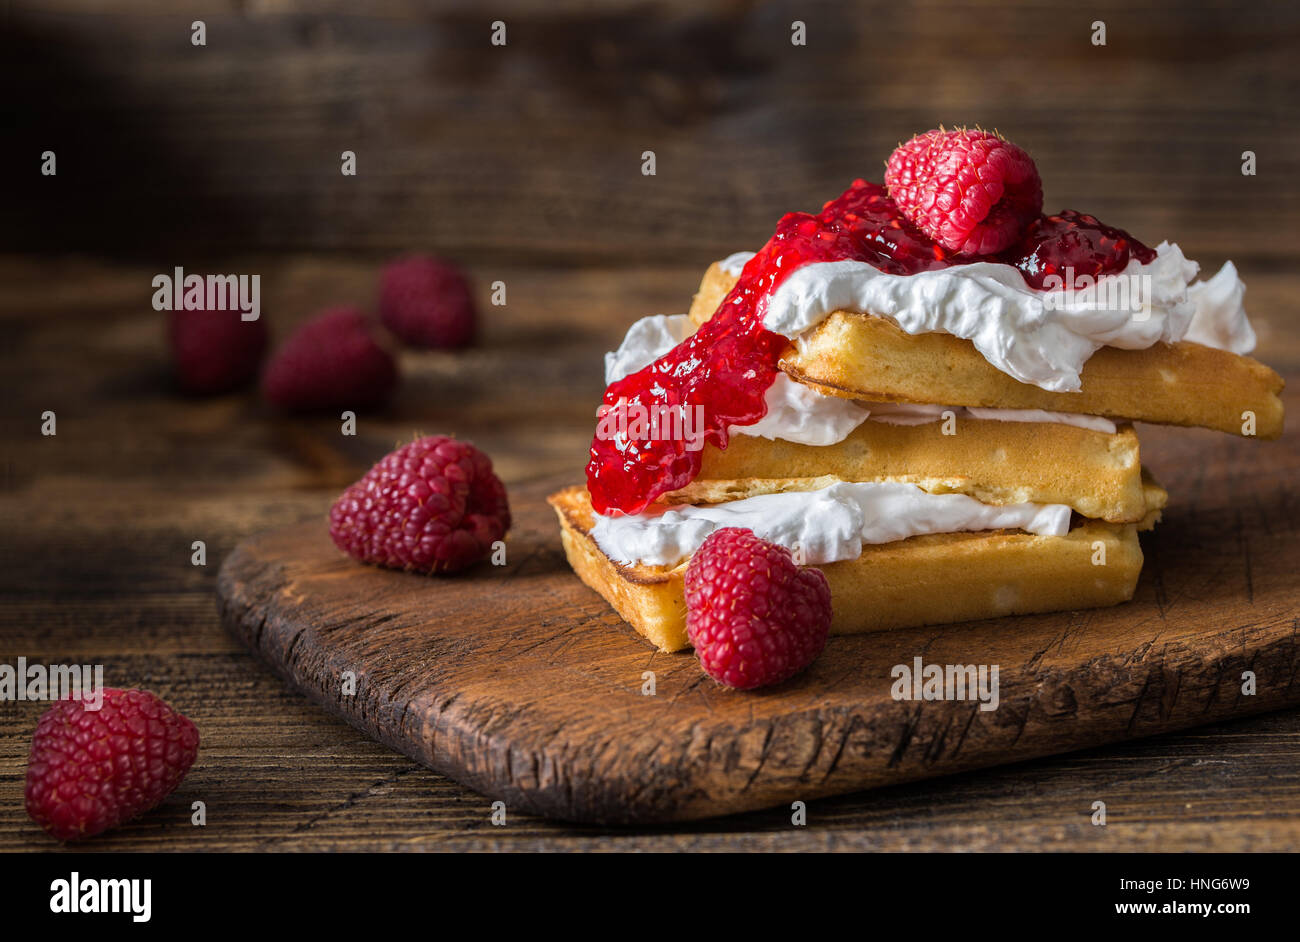 Belgian waffles with raspberries and double cream on rustic table. - Stock Image